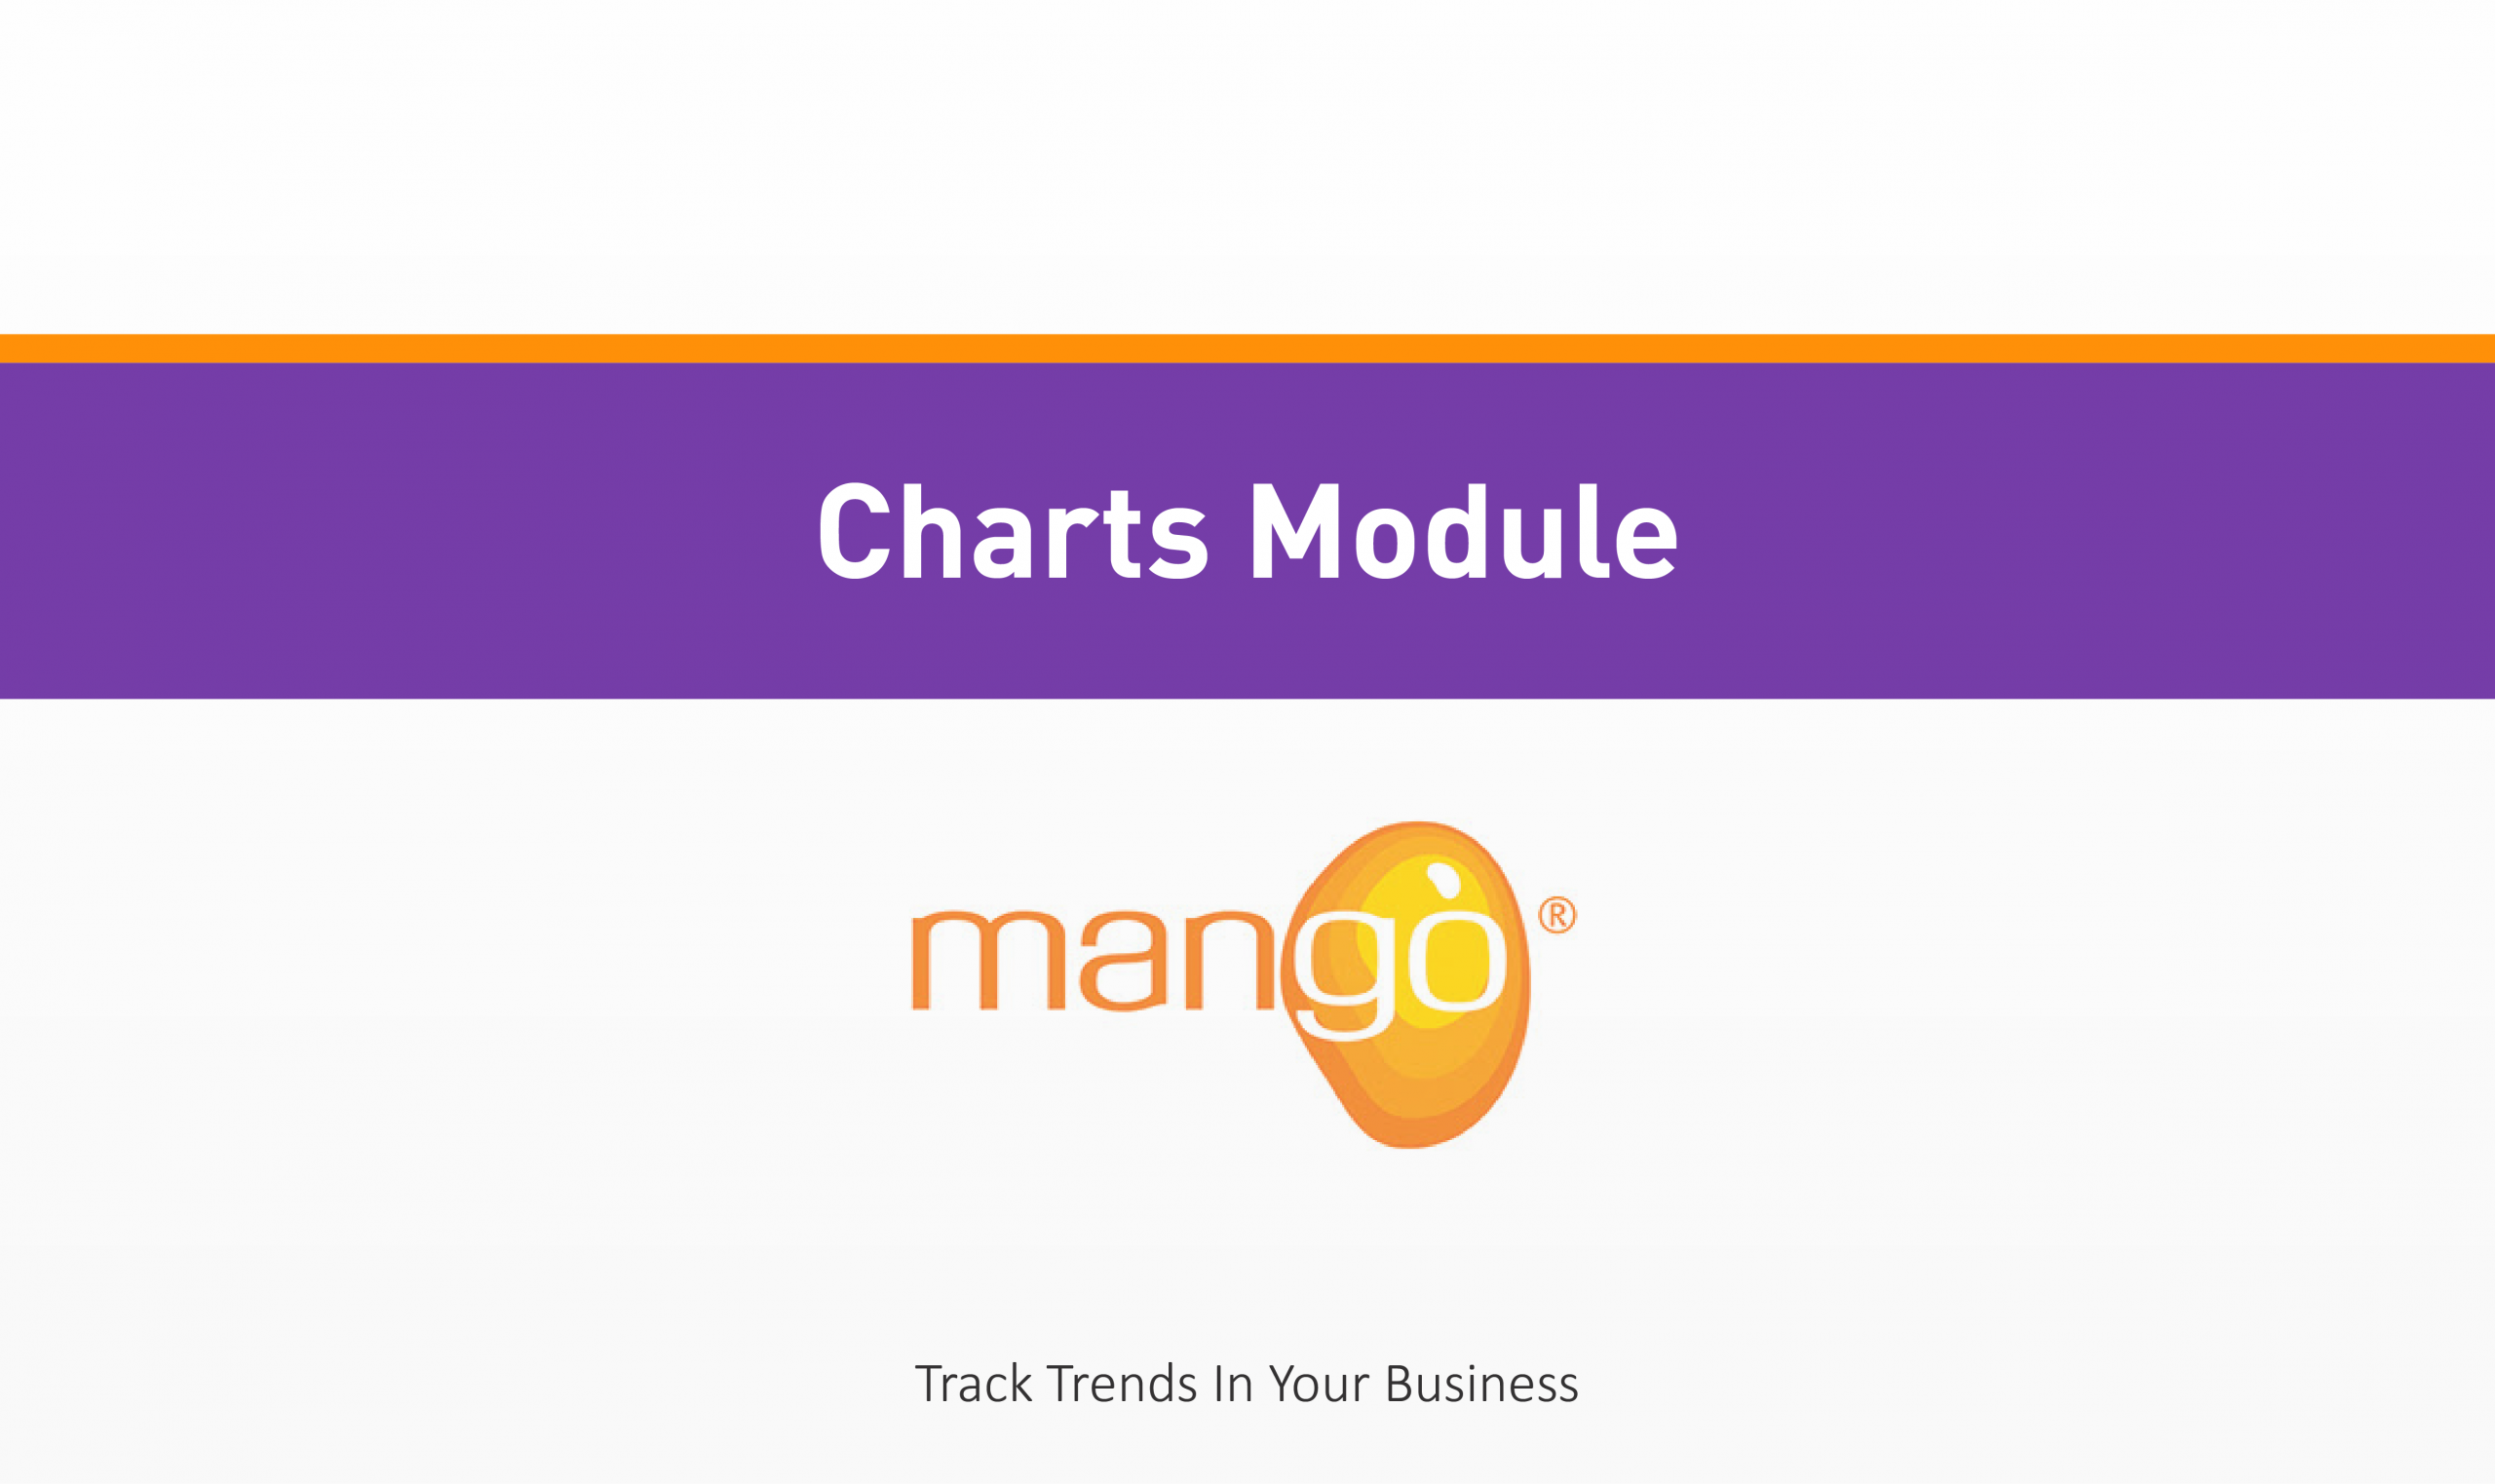 Charts Business Development Quality Health Safety Environment Management Compliance Services Australia QHSE Consulting And Auditing Mango Compliance Software Solutions